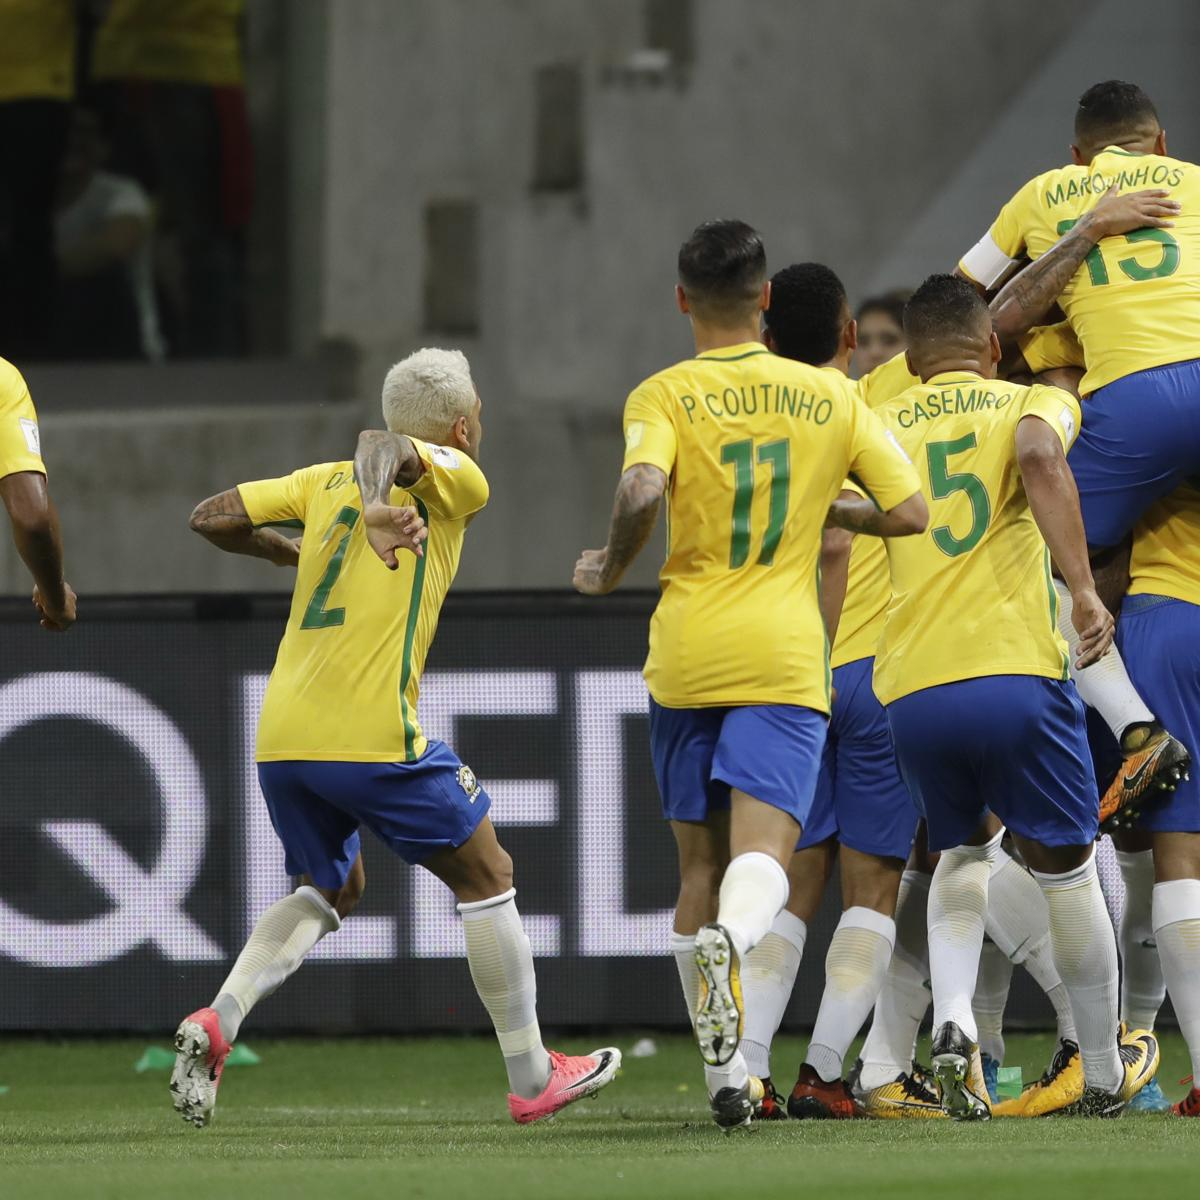 Brazil Prevent Chile from Qualifying for 2018 World Cup with 3-0 Win